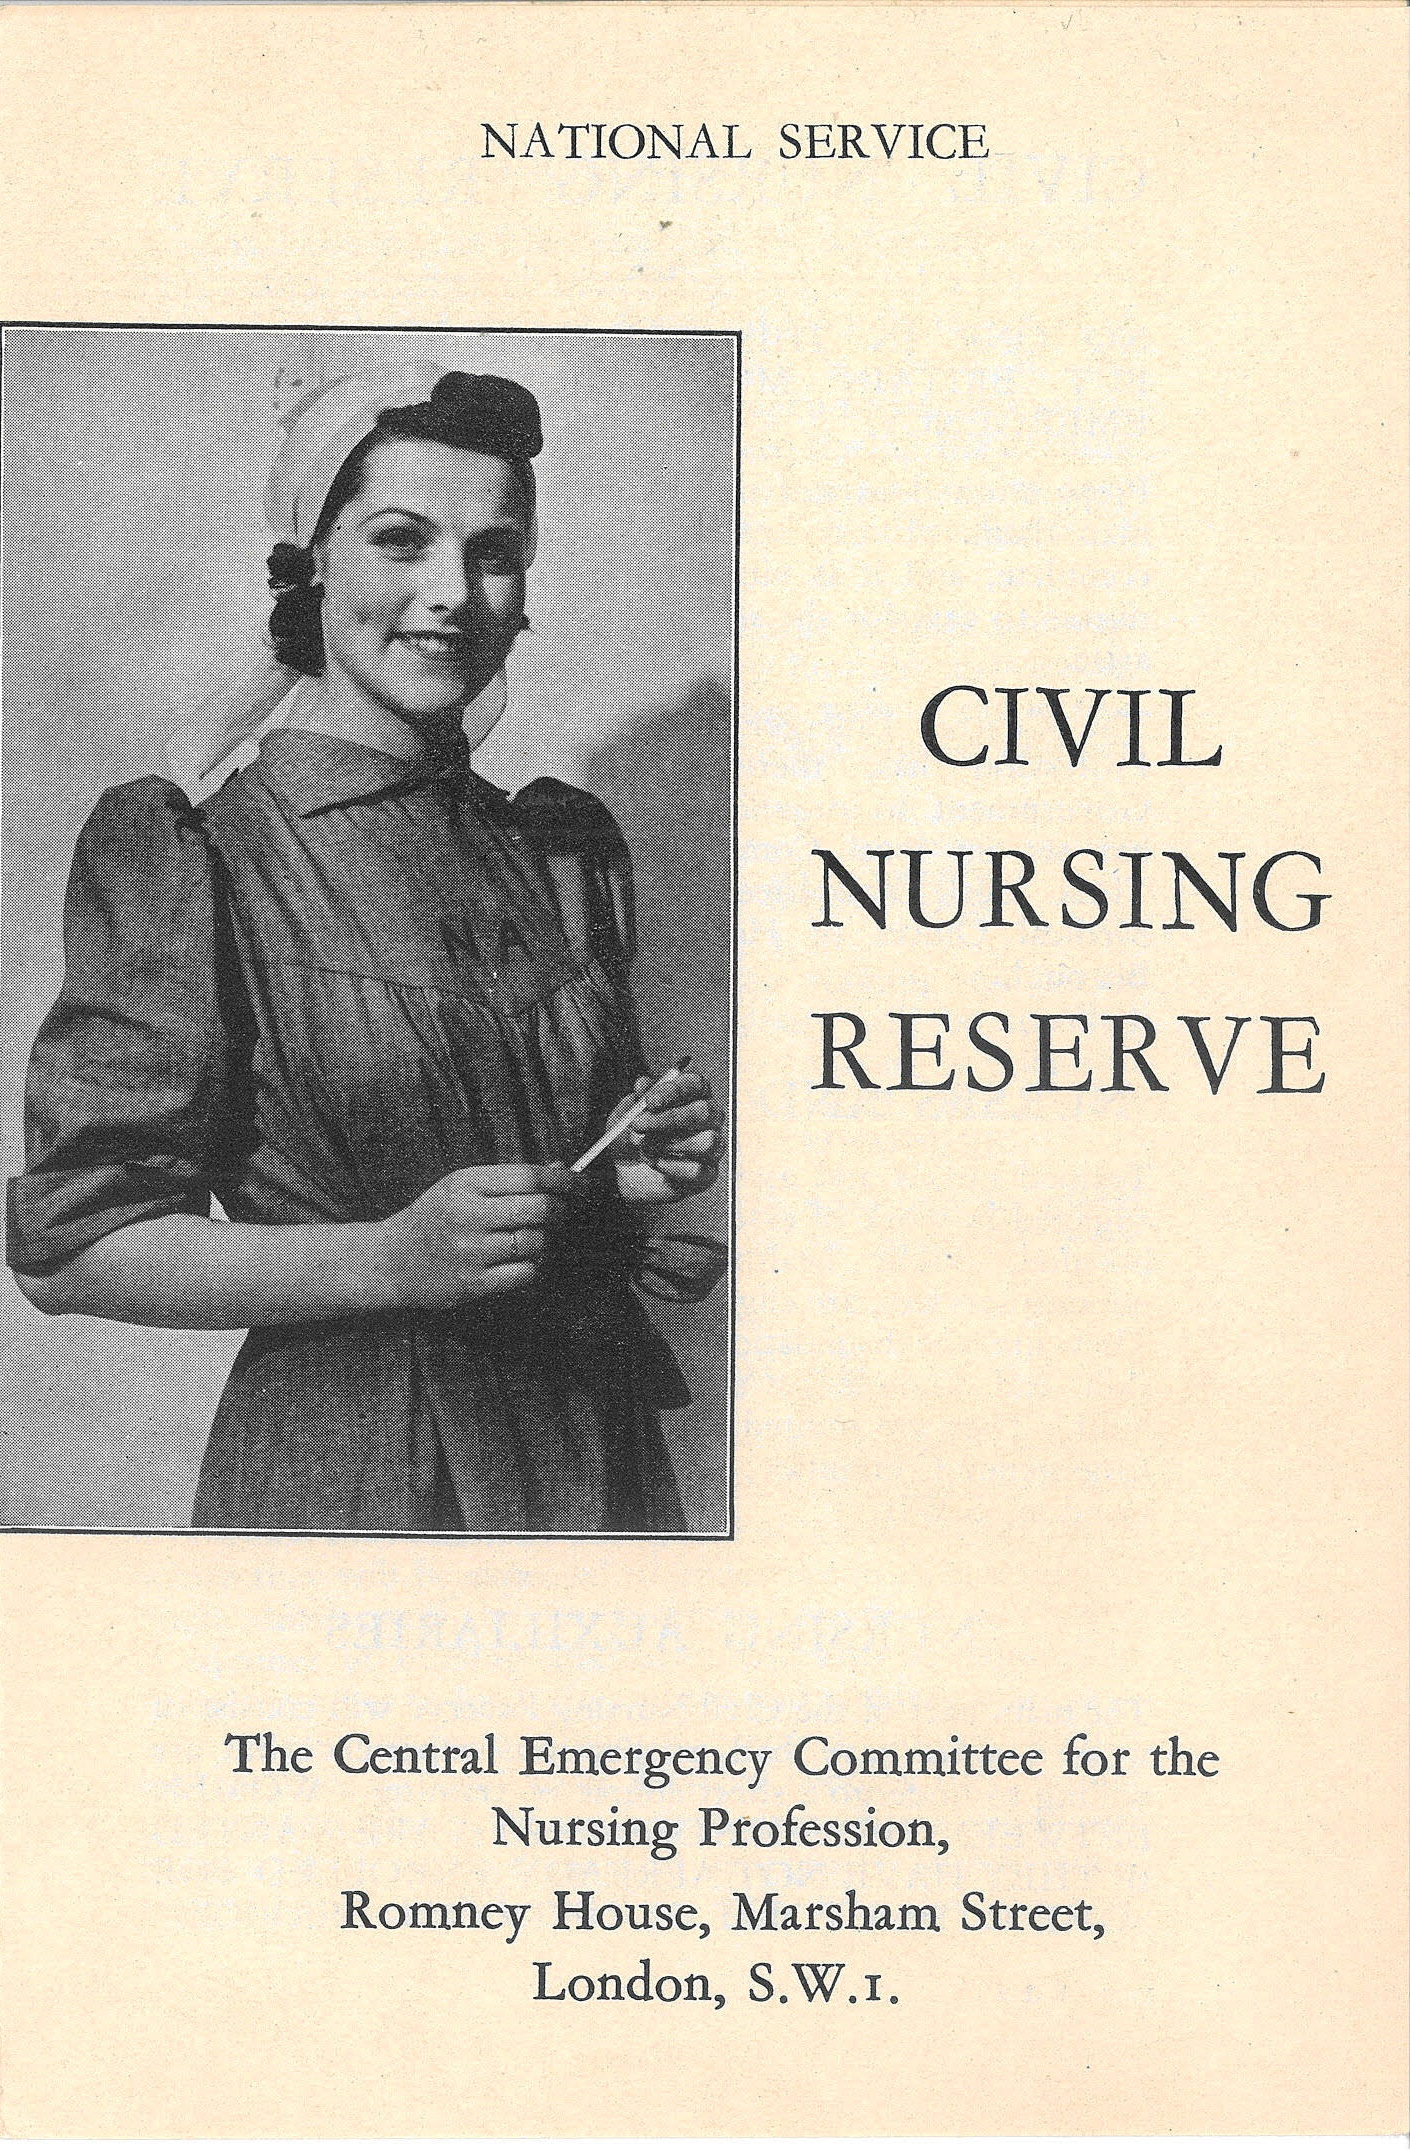 You Can Join Too Recruitment For The Civil Nursing Reserve Ceredigion Archives